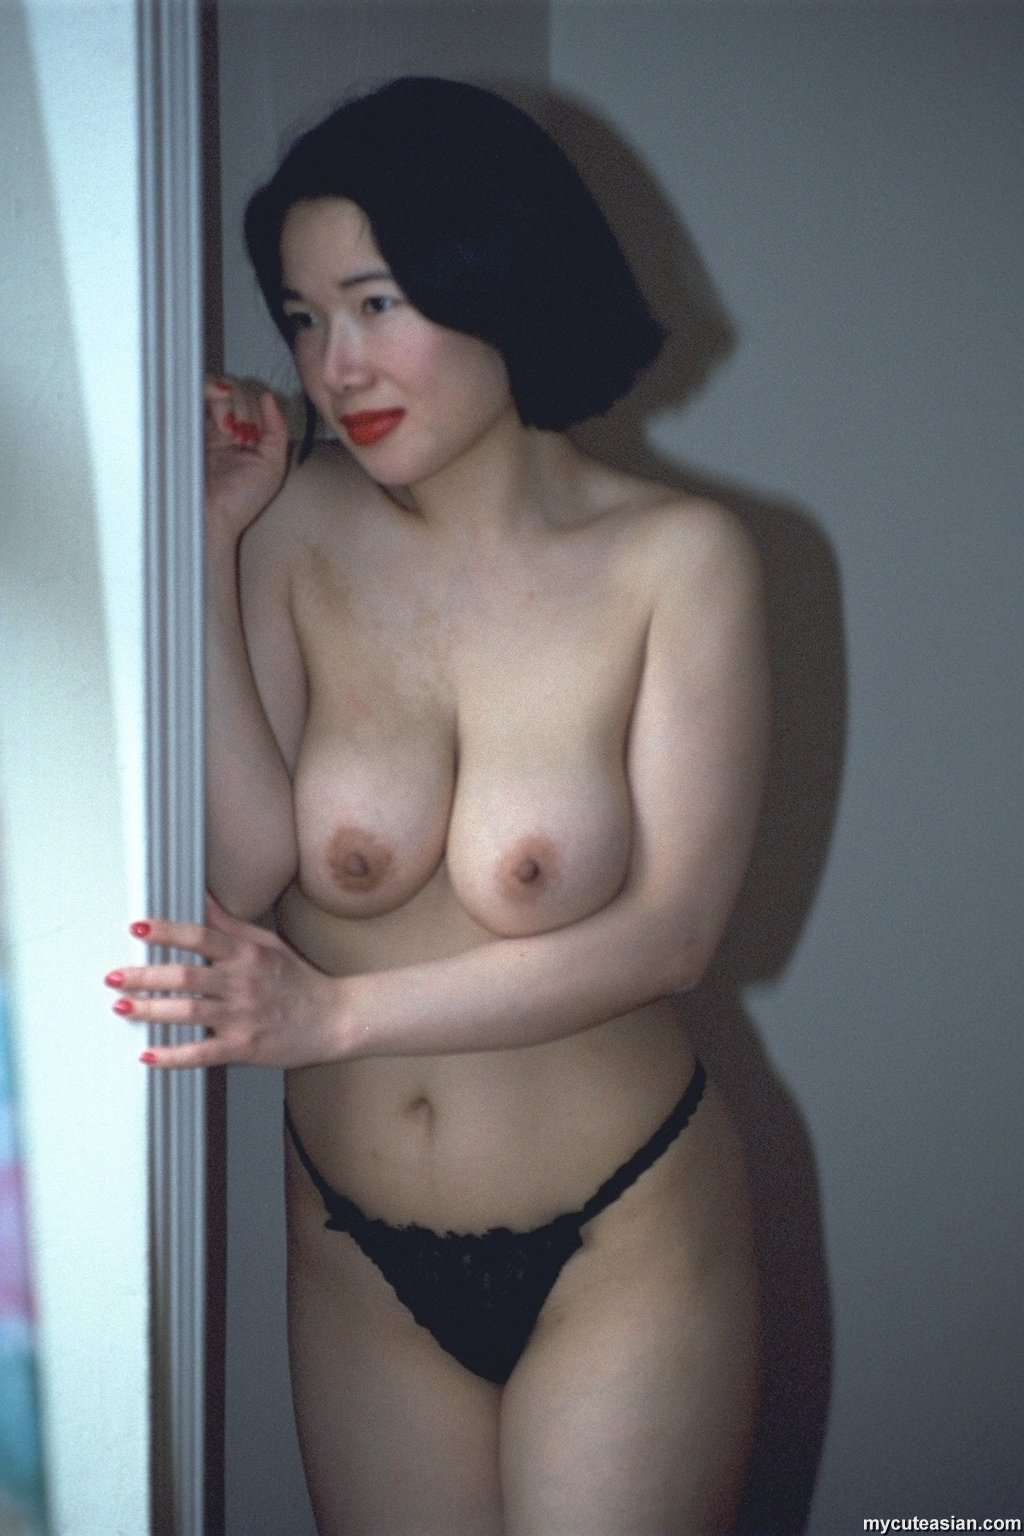 Busty midget woman